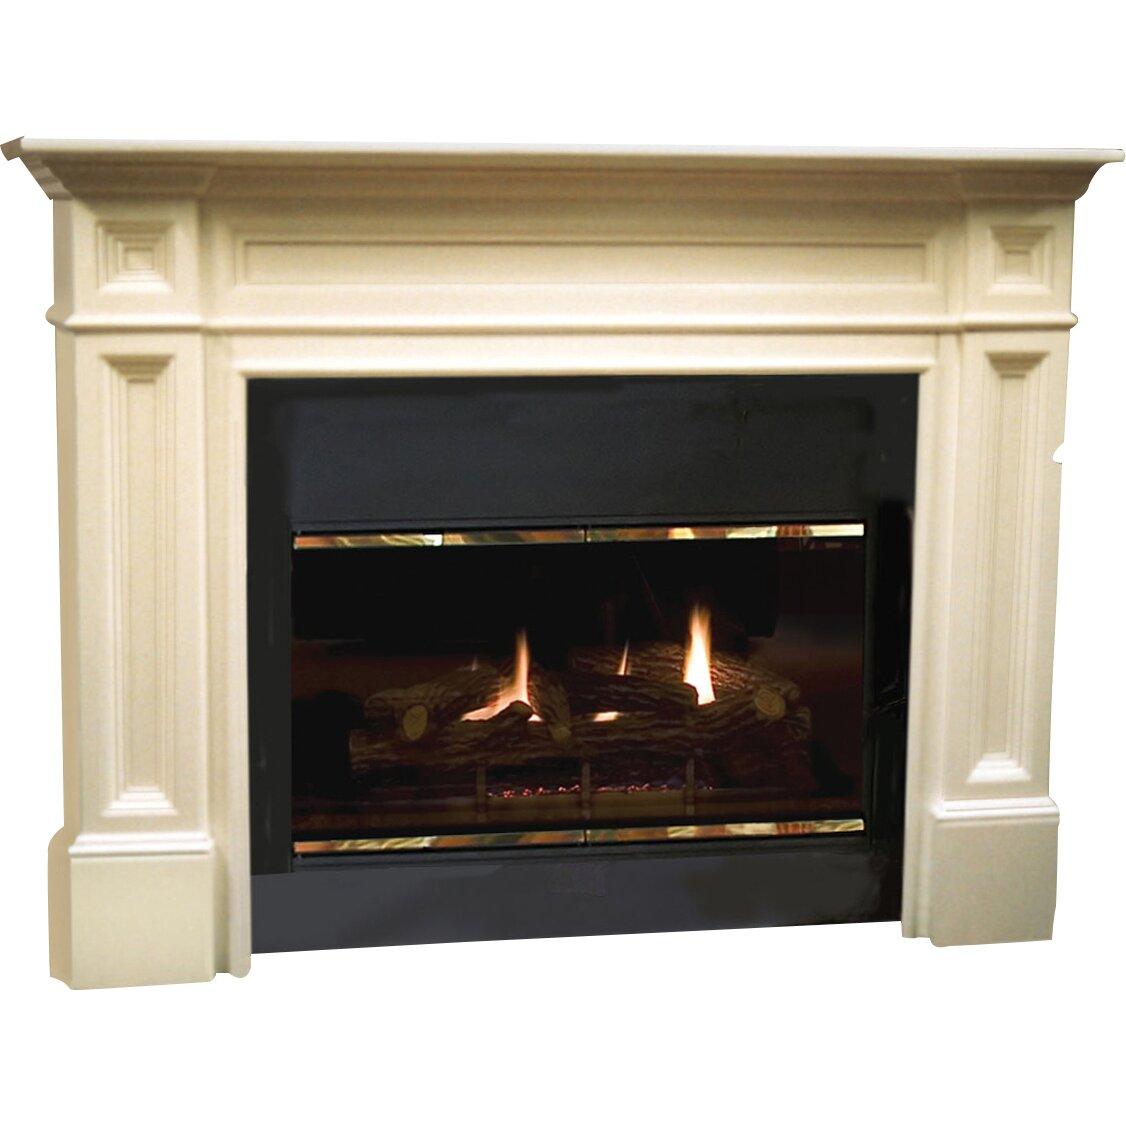 Pearl Mantels Avondale Fireplace Surround: Pearl Mantels The Classique Fireplace Mantel Surround